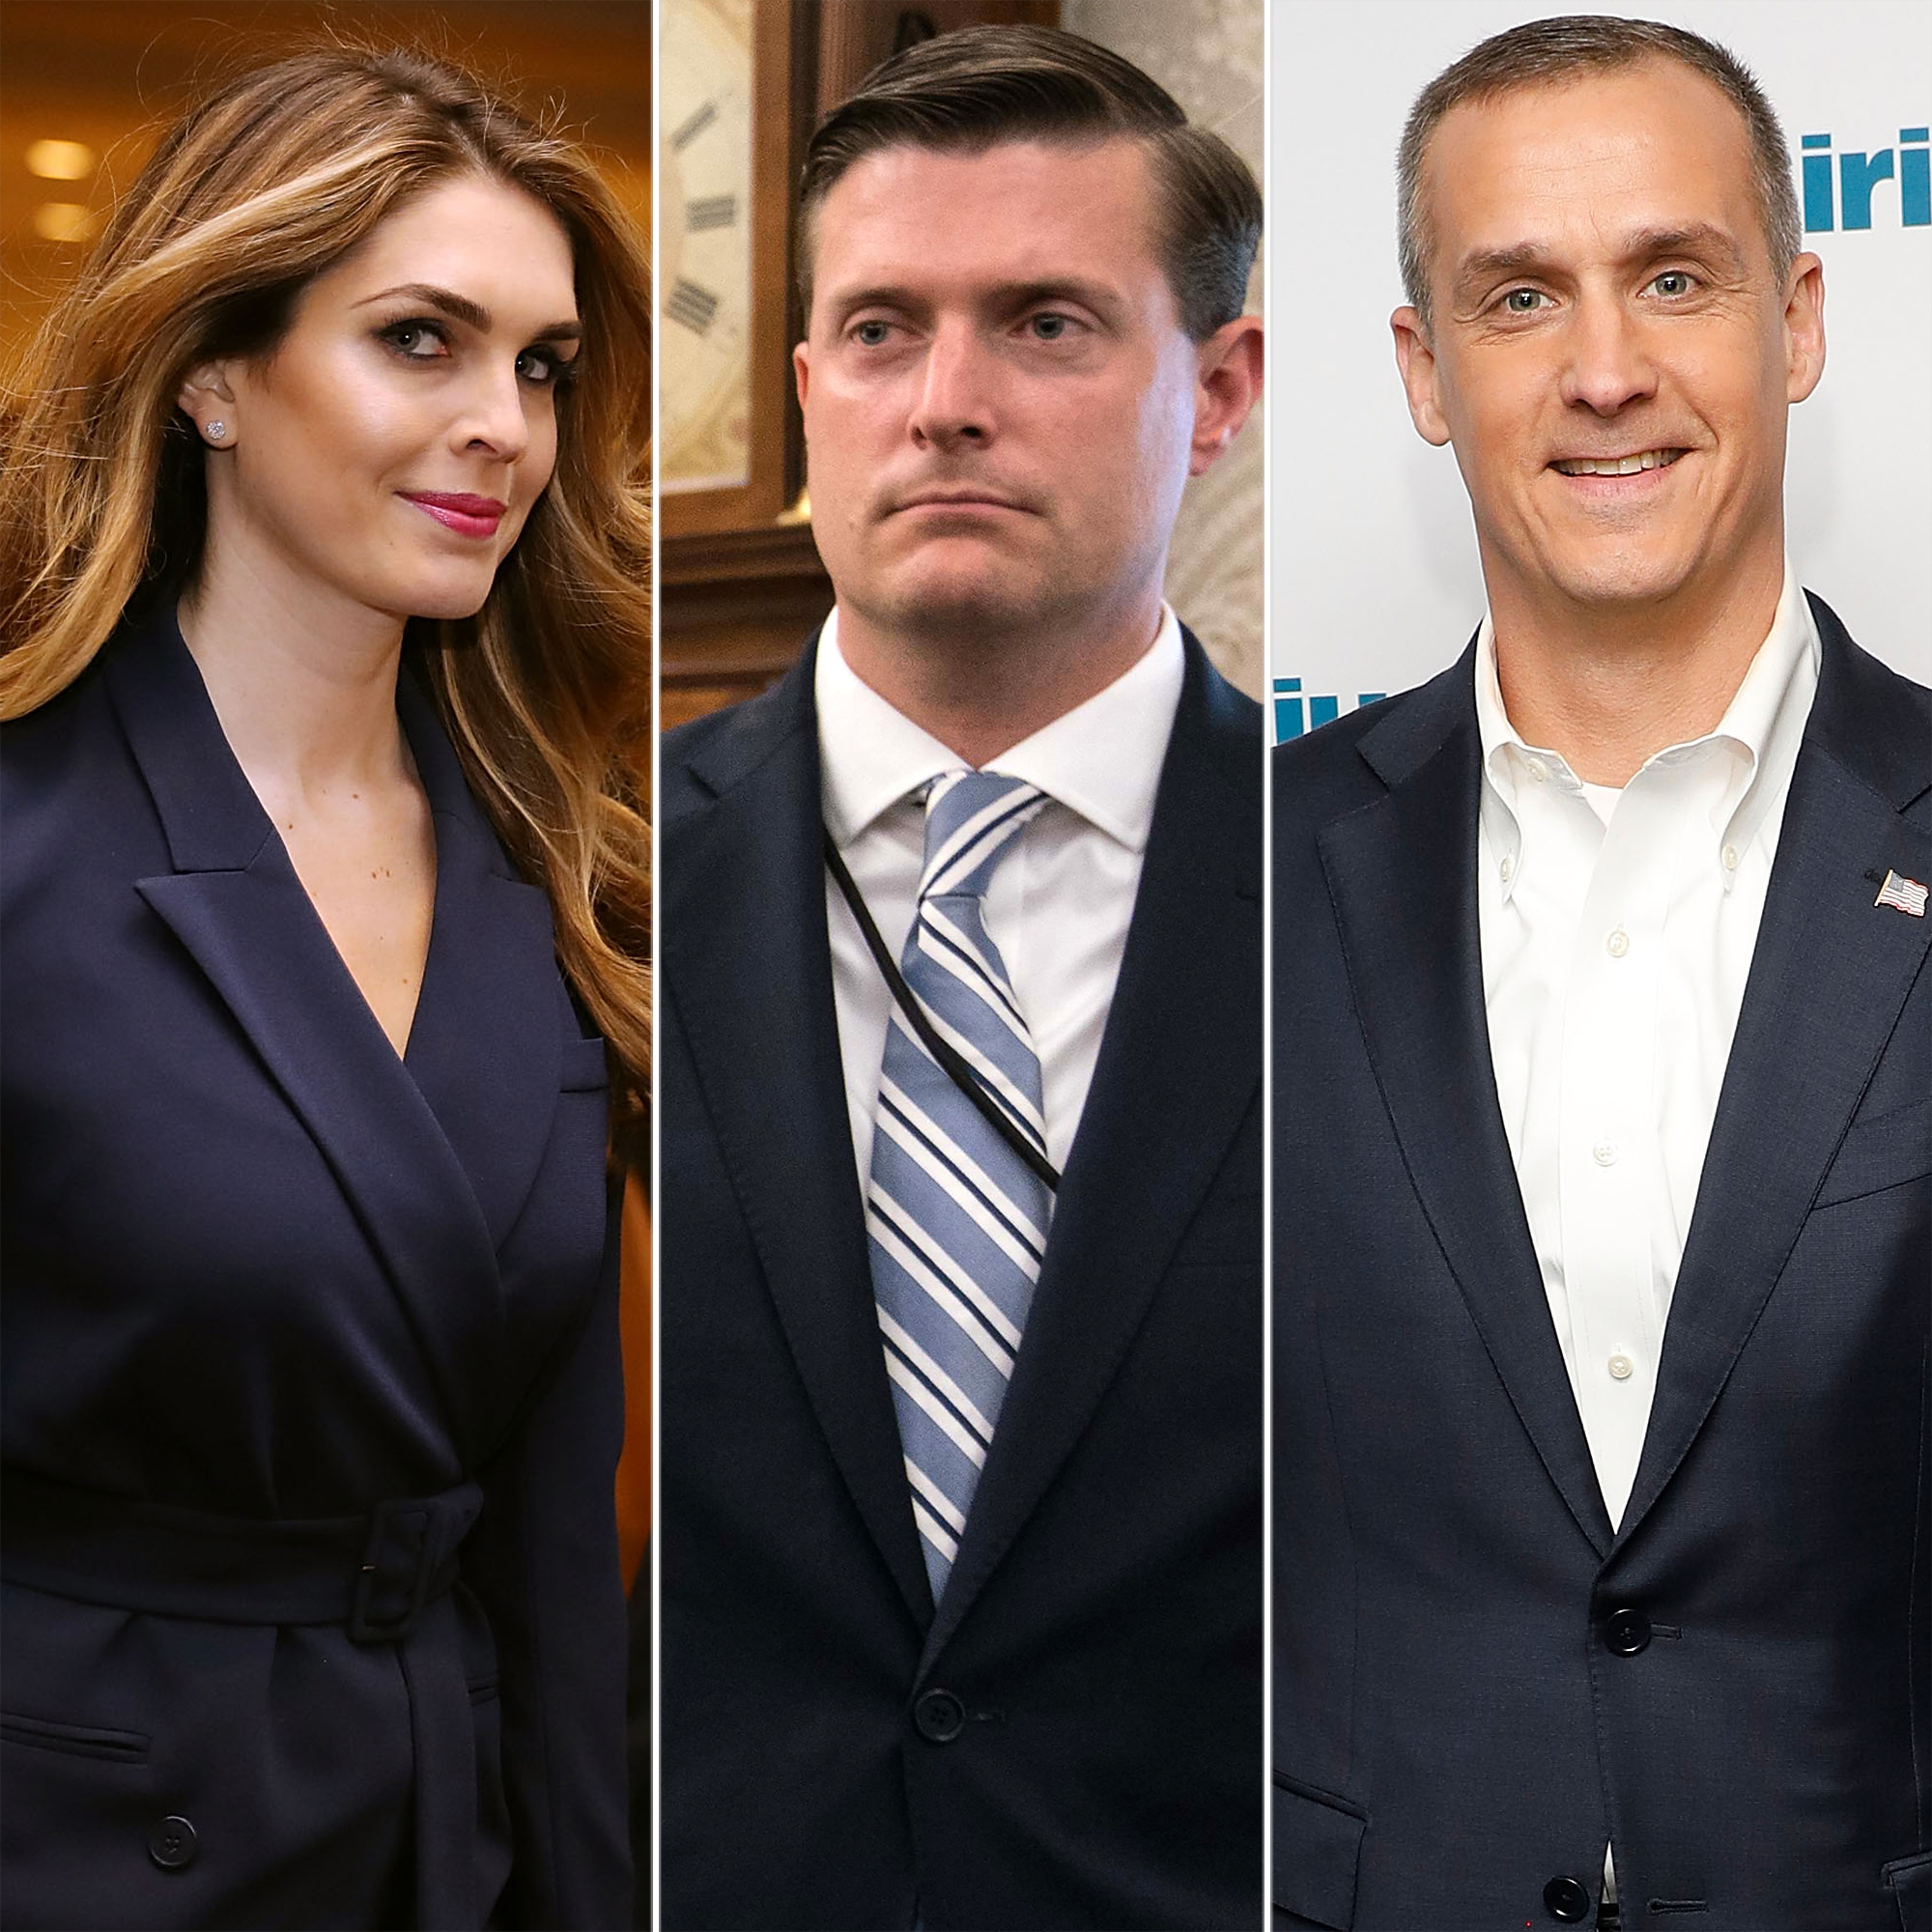 Hope Hicks, Rob Porter and Corey Lewandowski love triangle